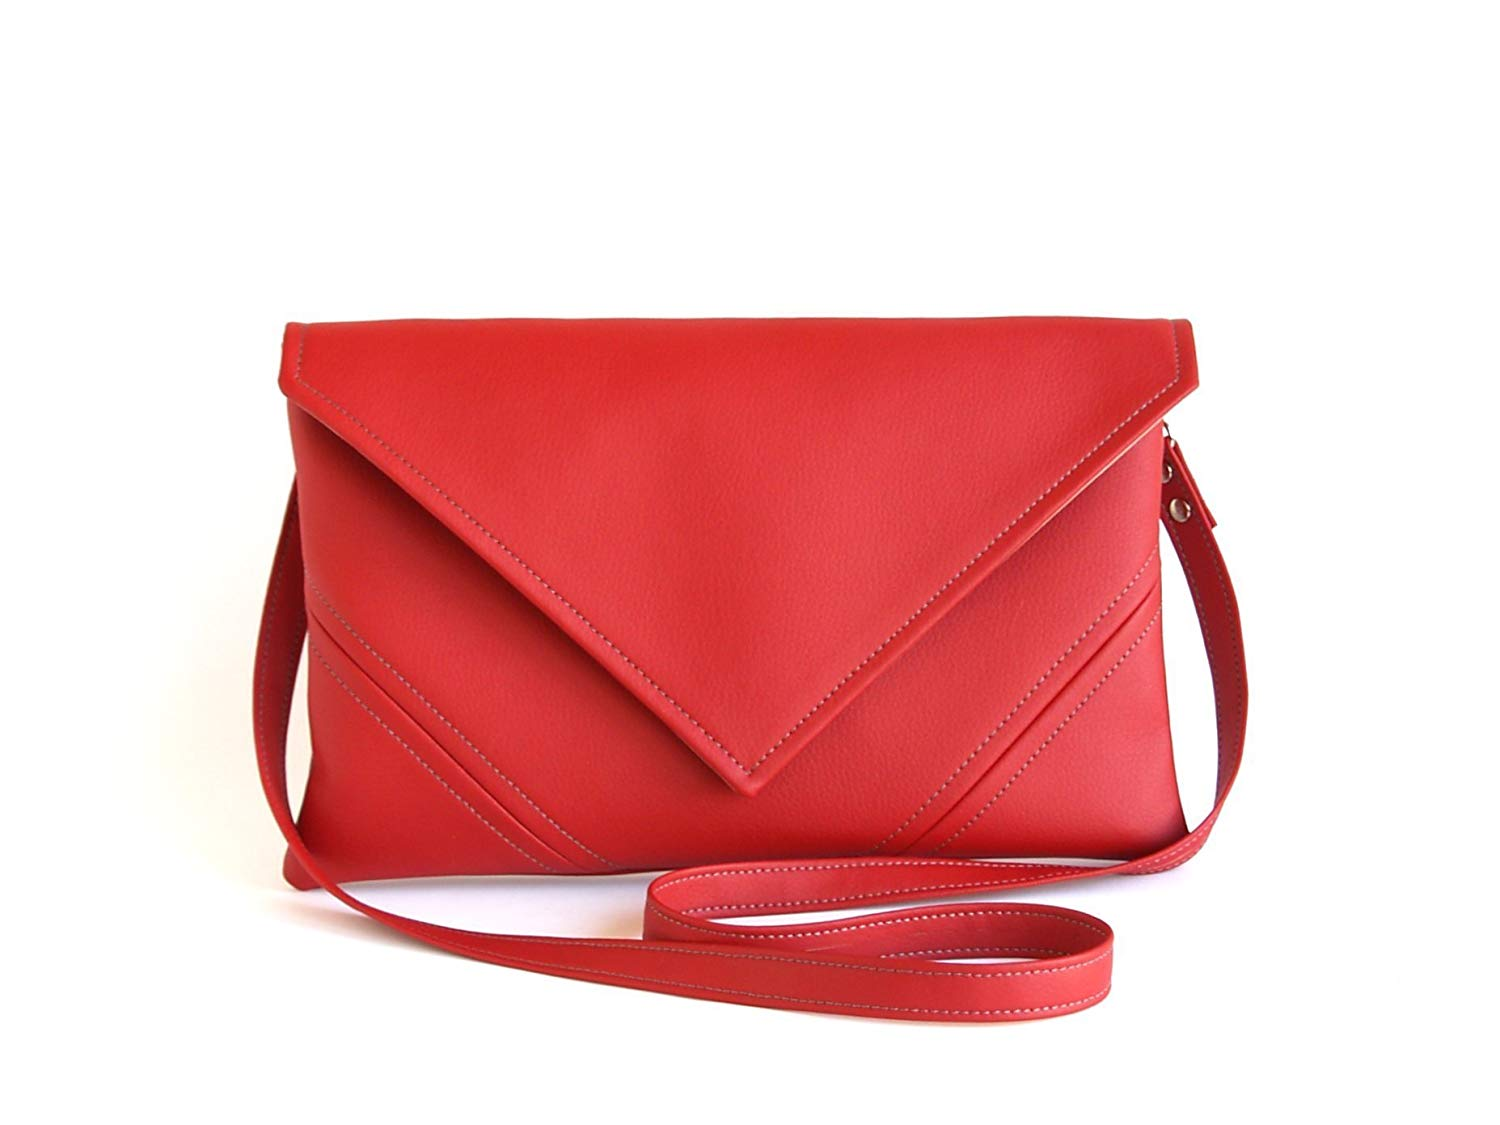 Red Clutch Bag Bridesmaid Clutch Handmade Vegan Leather Clutch Purse Gift For Her Evening Bag Vegan Purse Envelope leather Clutch Evening Clutch